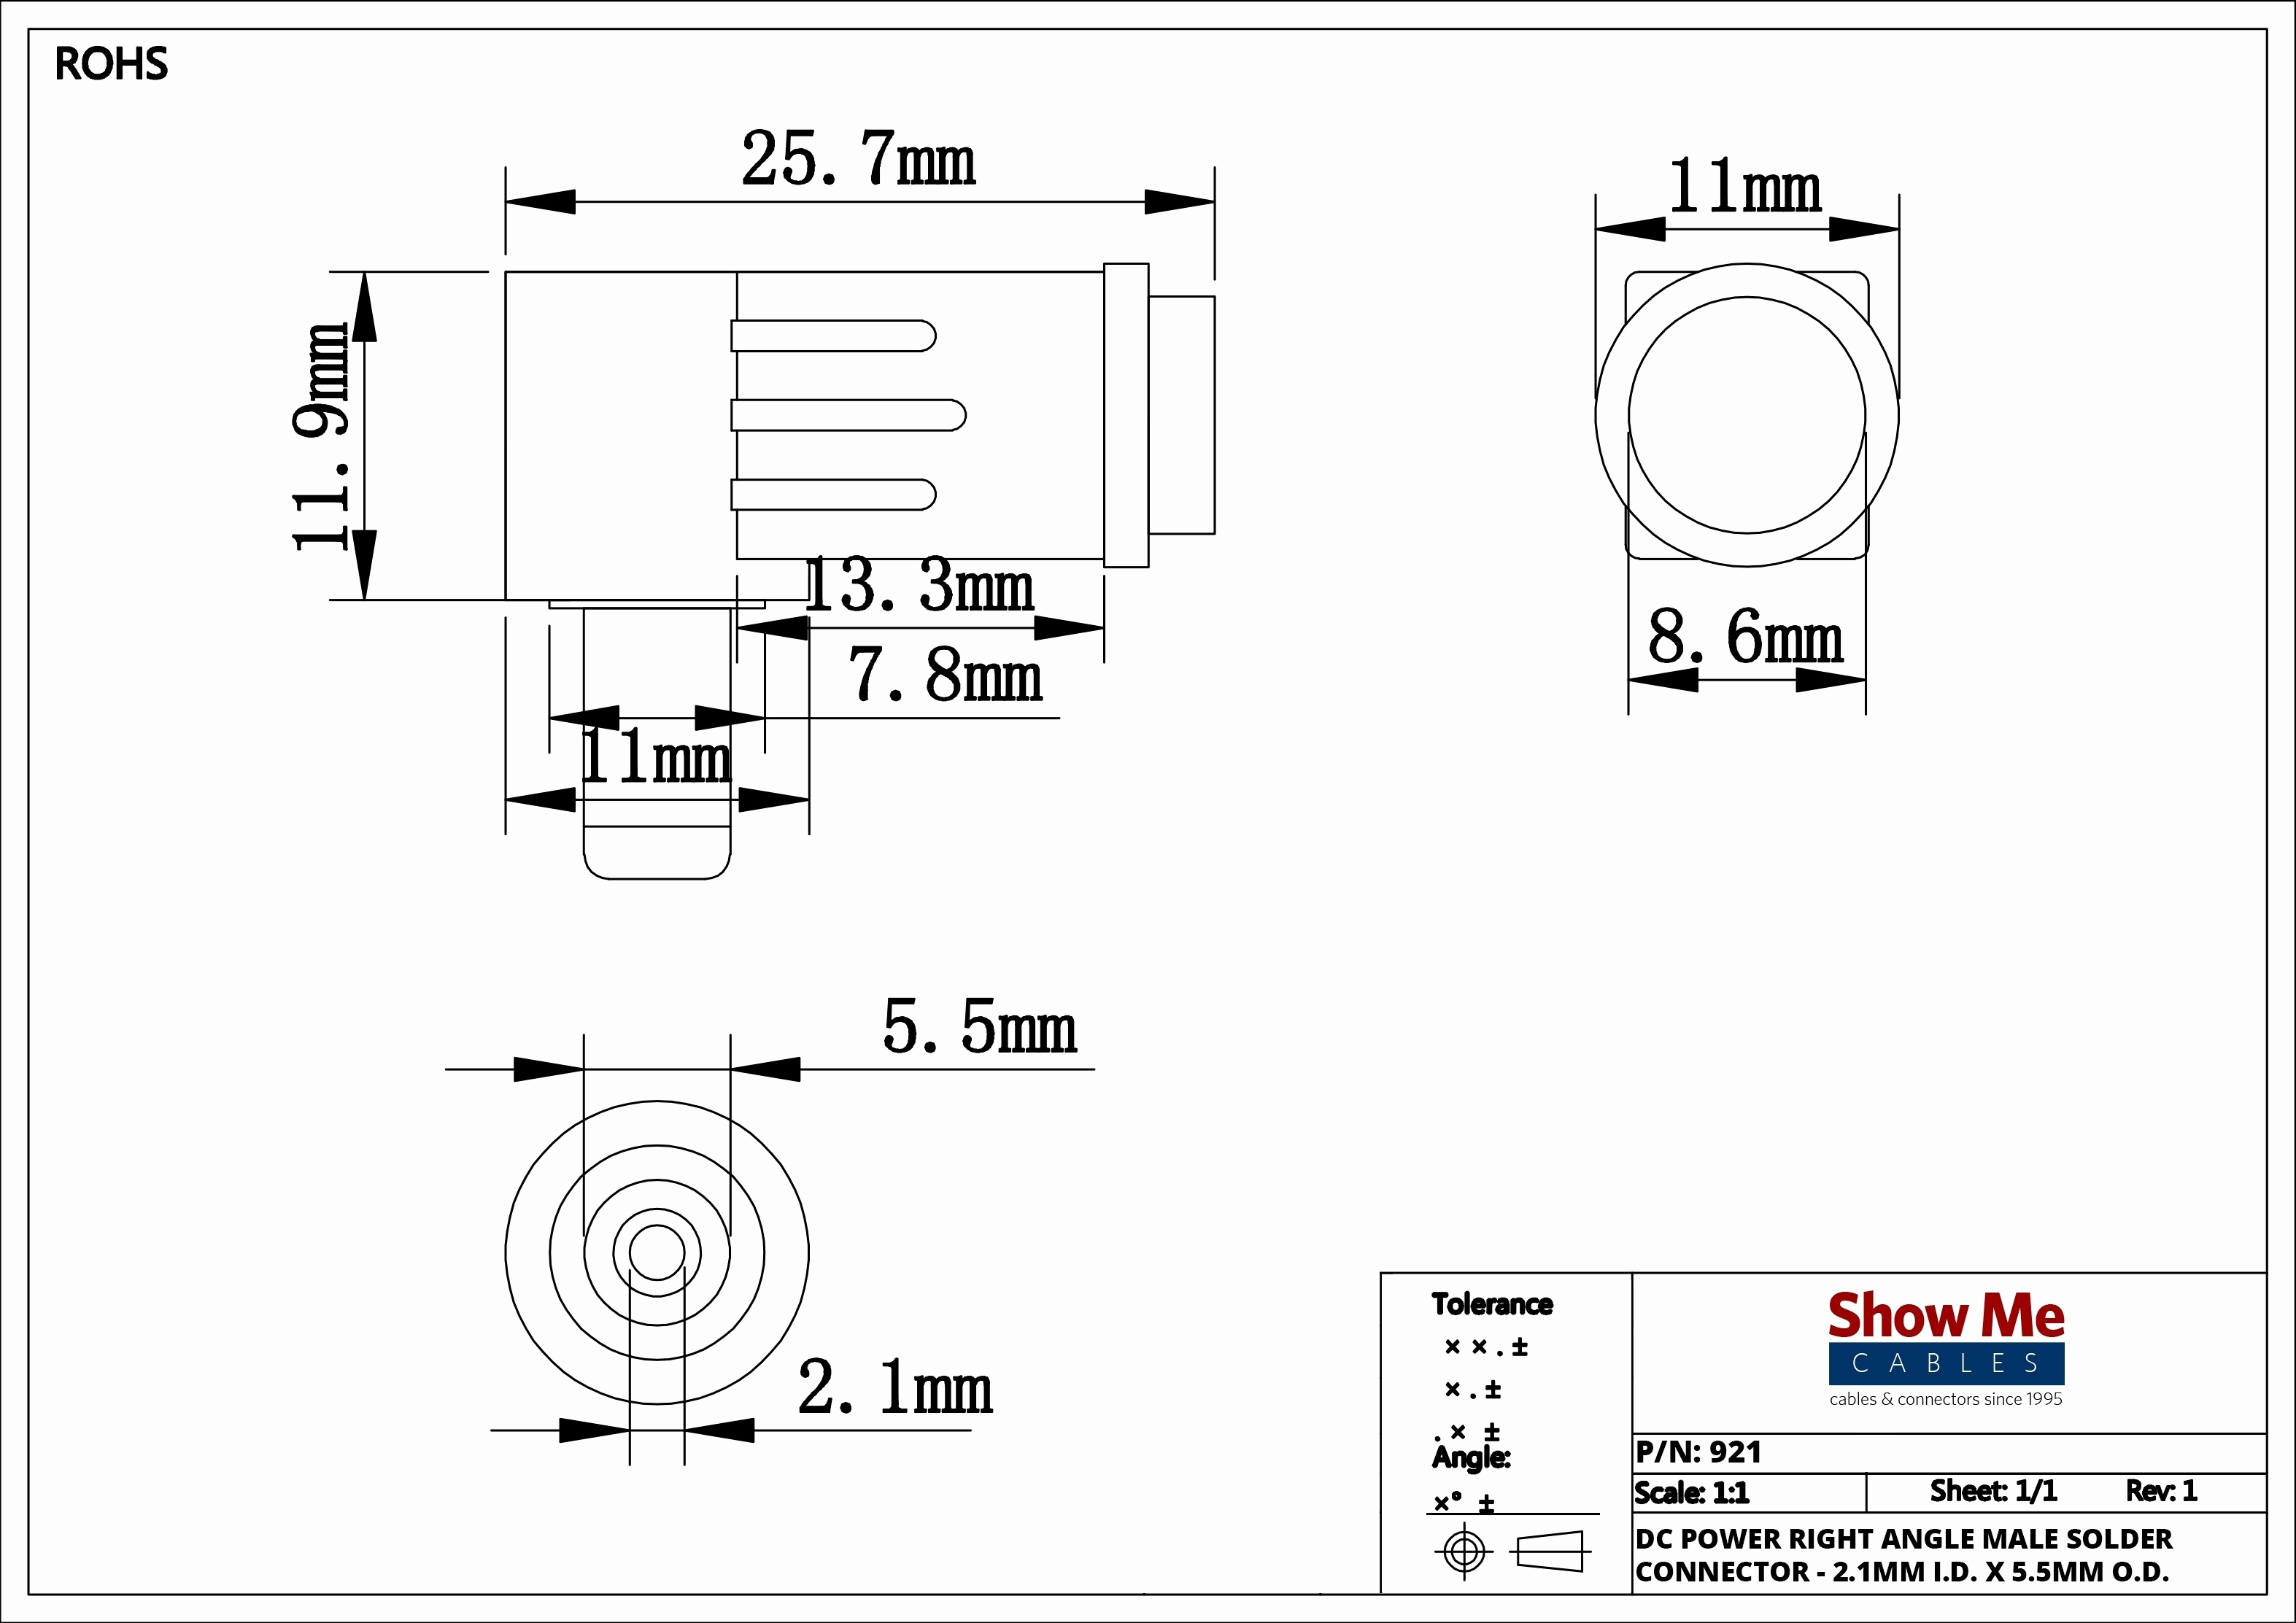 kwikee level best wiring schematic Download-kwikee level best wiring schematic Download Full Size of Wiring Diagram Kwikee Electric Step Wiring DOWNLOAD Wiring Diagram 7-j